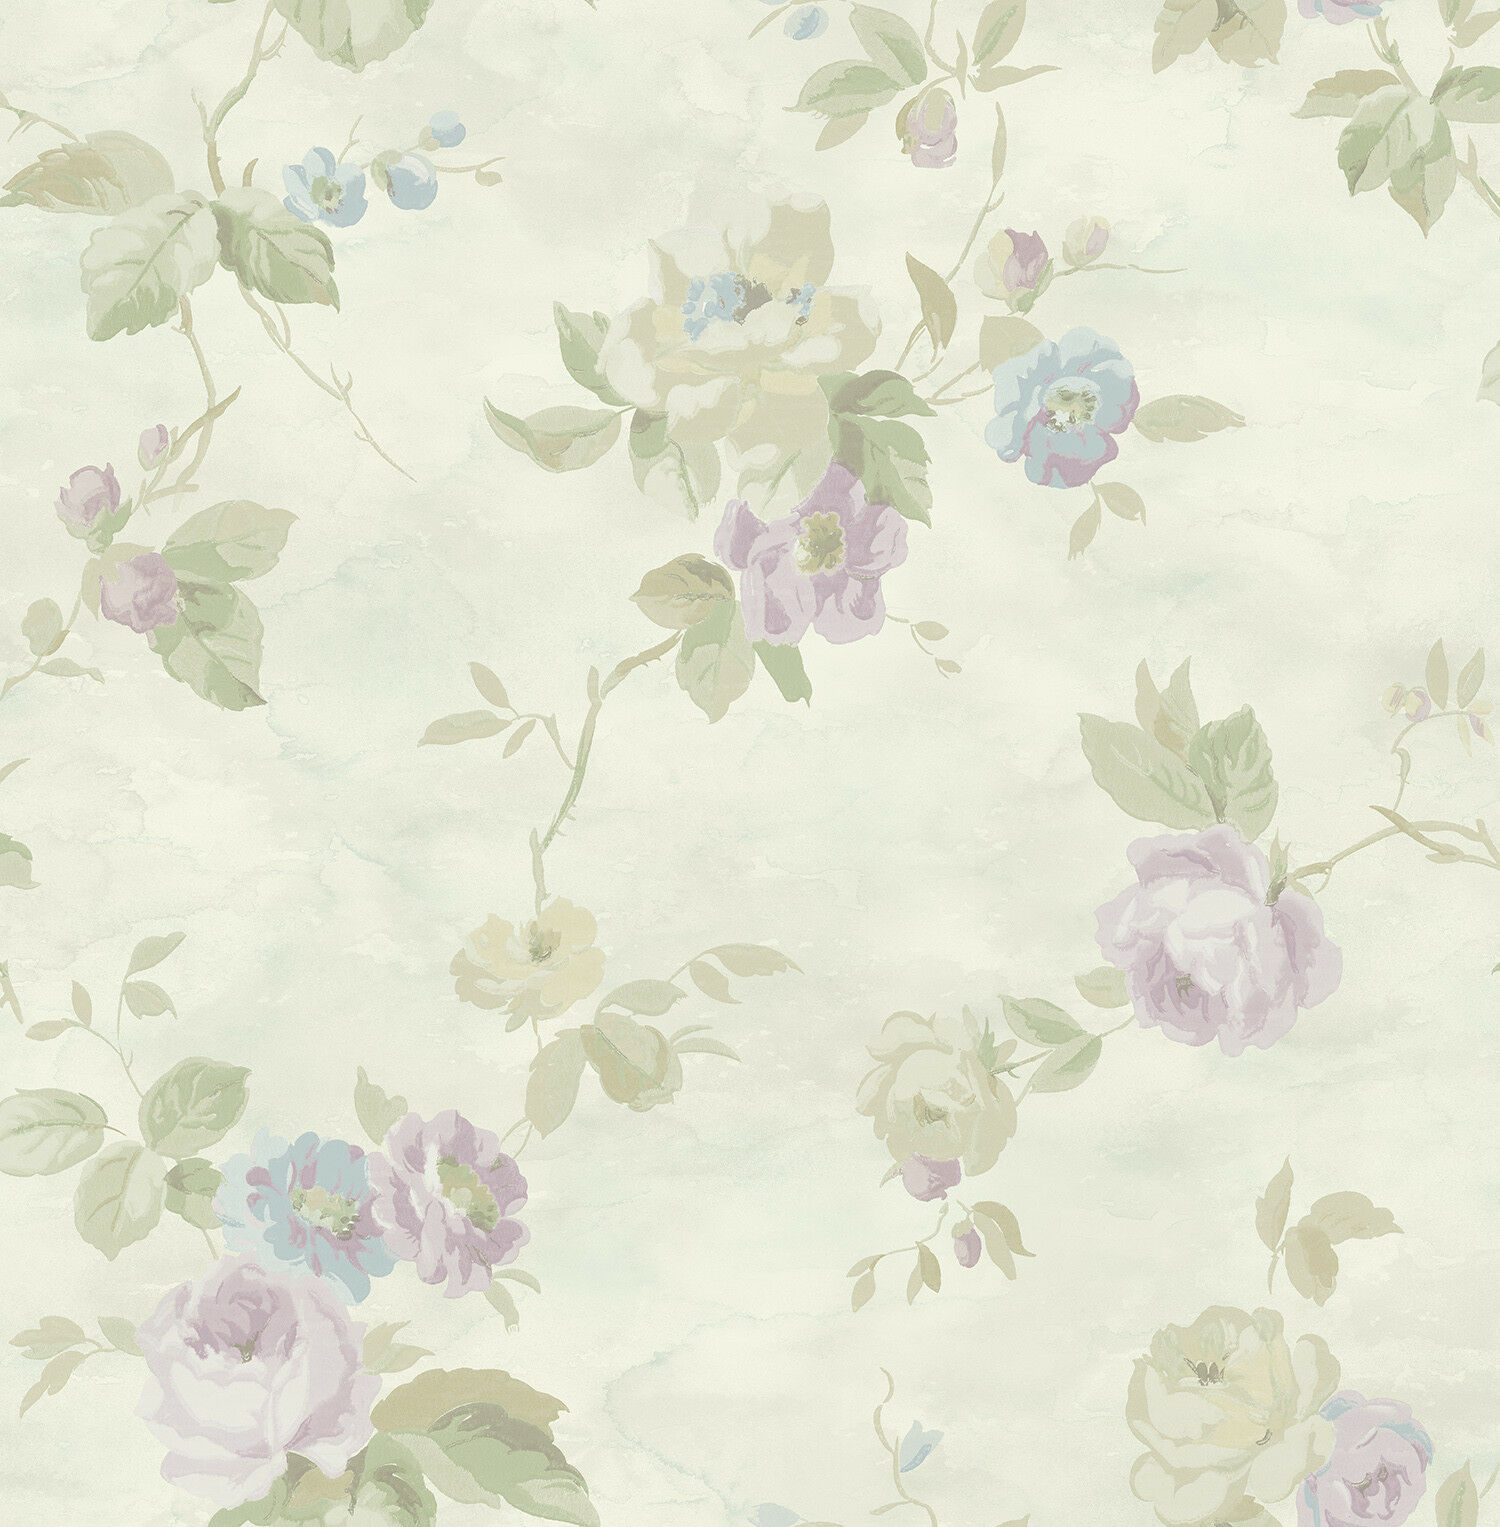 Floral Wallpaper Blue Chinoiserie Vintage Cream Purple Samples